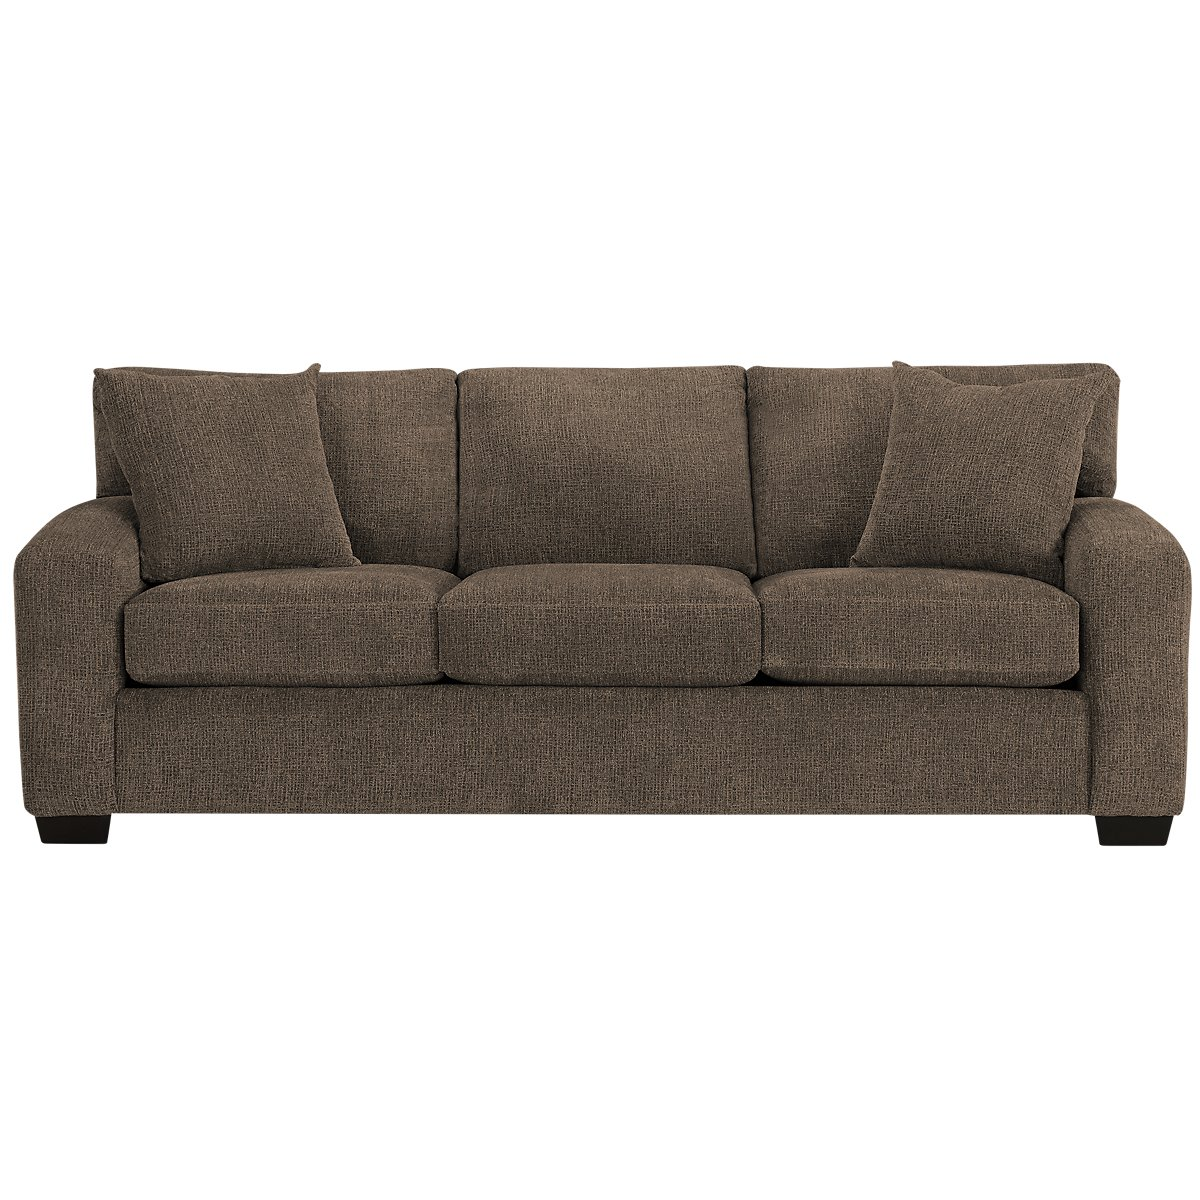 Dark brown microfiber sofa abson living monrovia sectional sofa chaise in dark brown thesofa Brown microfiber couch and loveseat